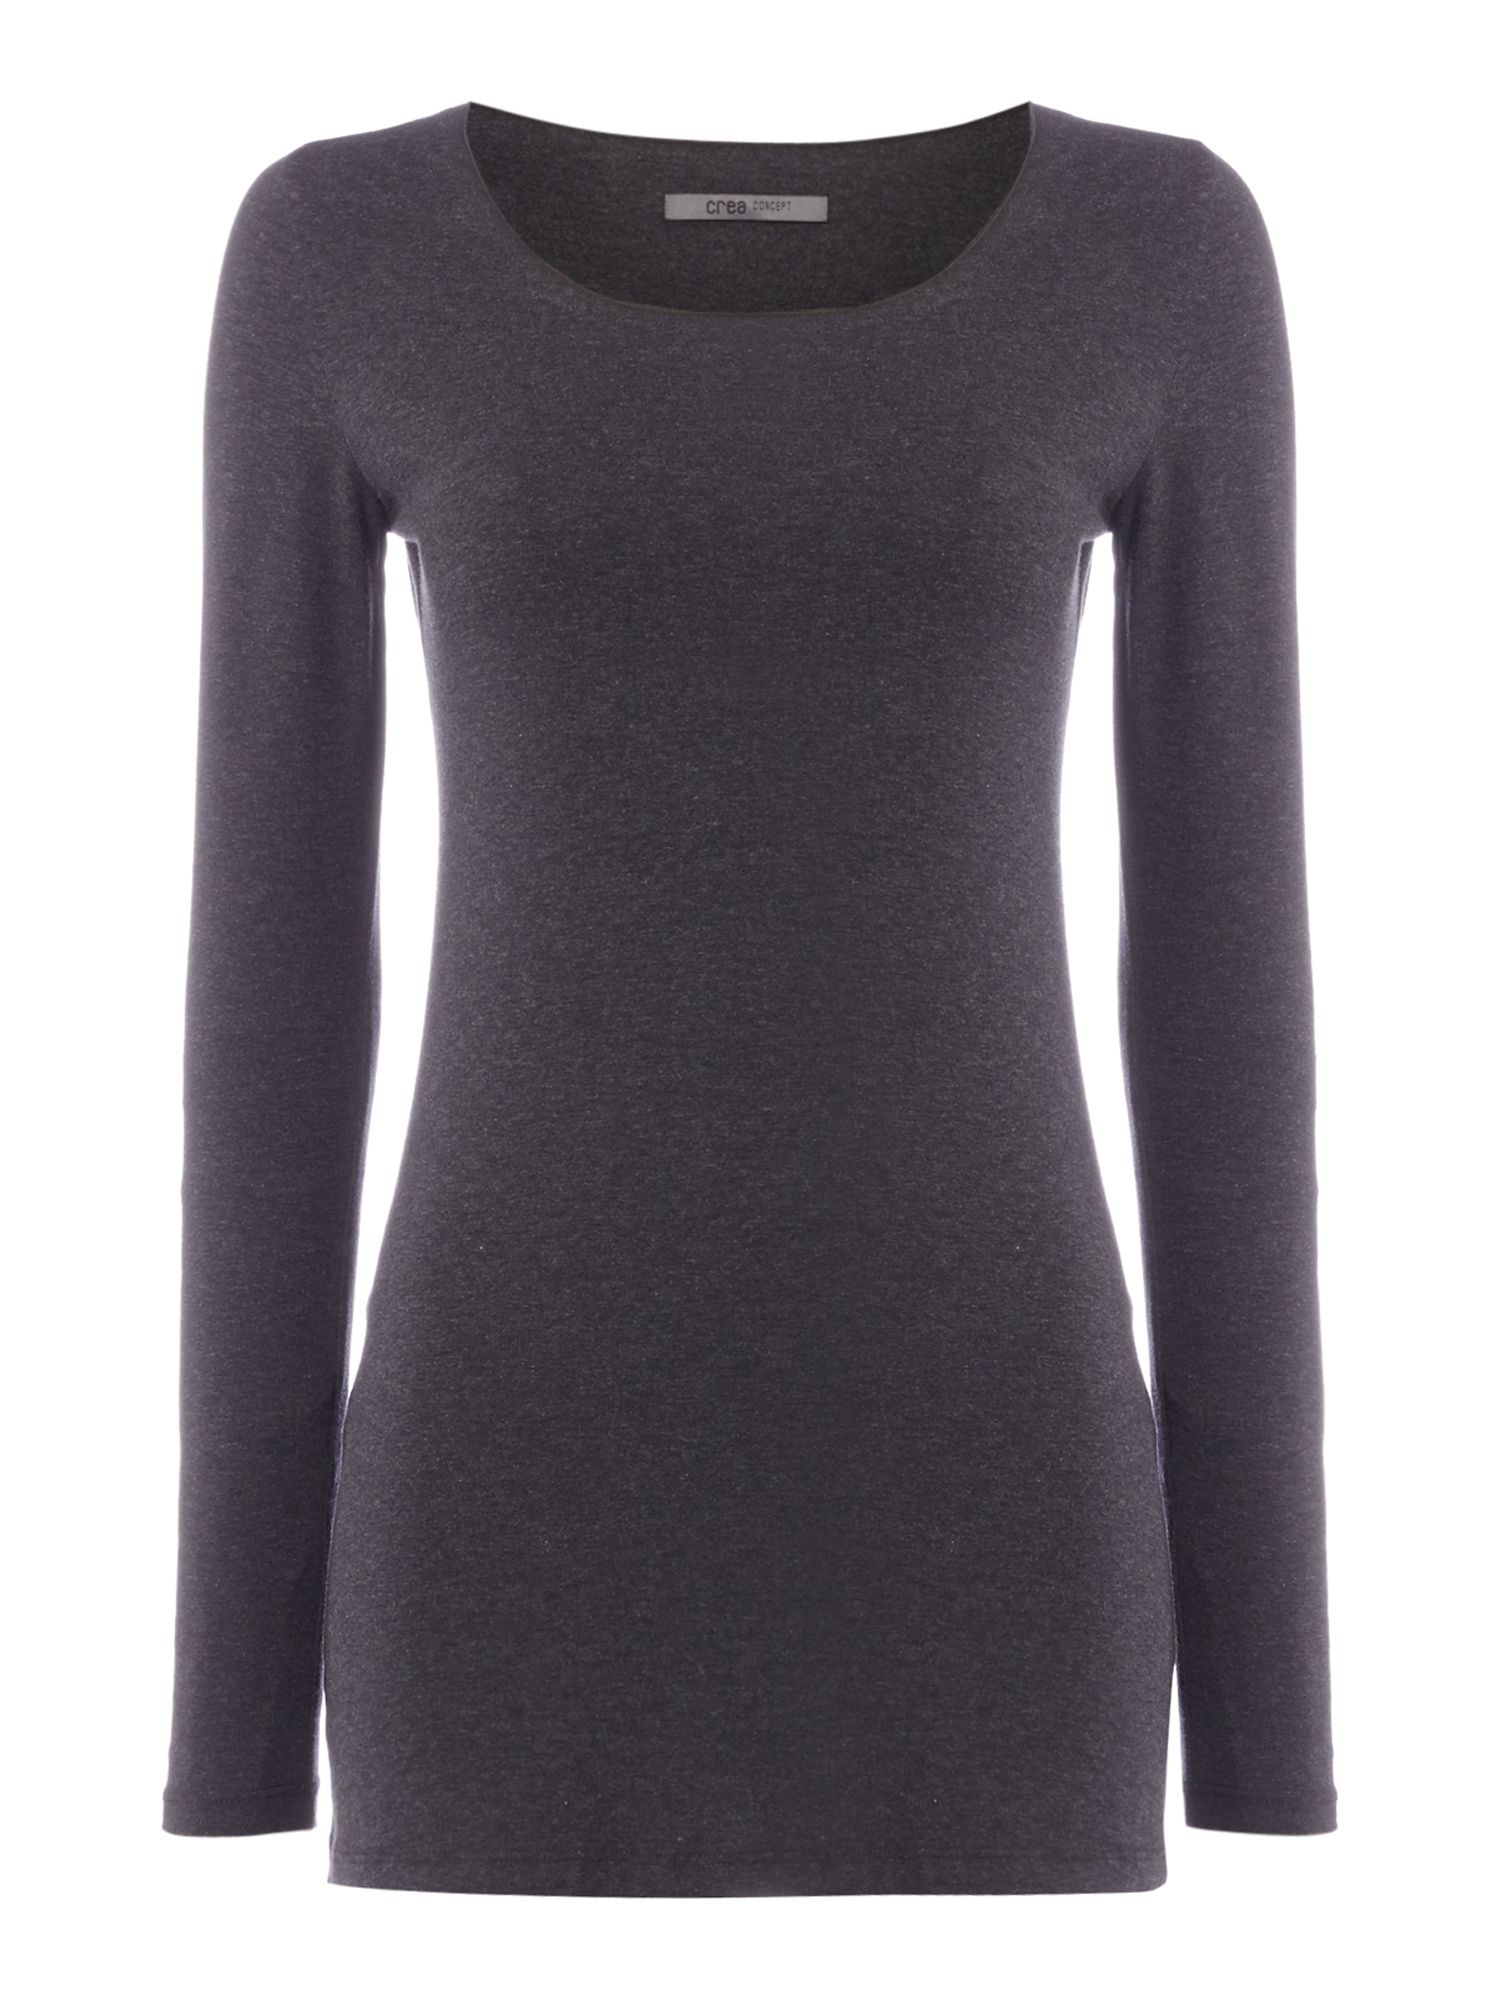 Crea Concept Long sleeve jersey top, Dark Grey